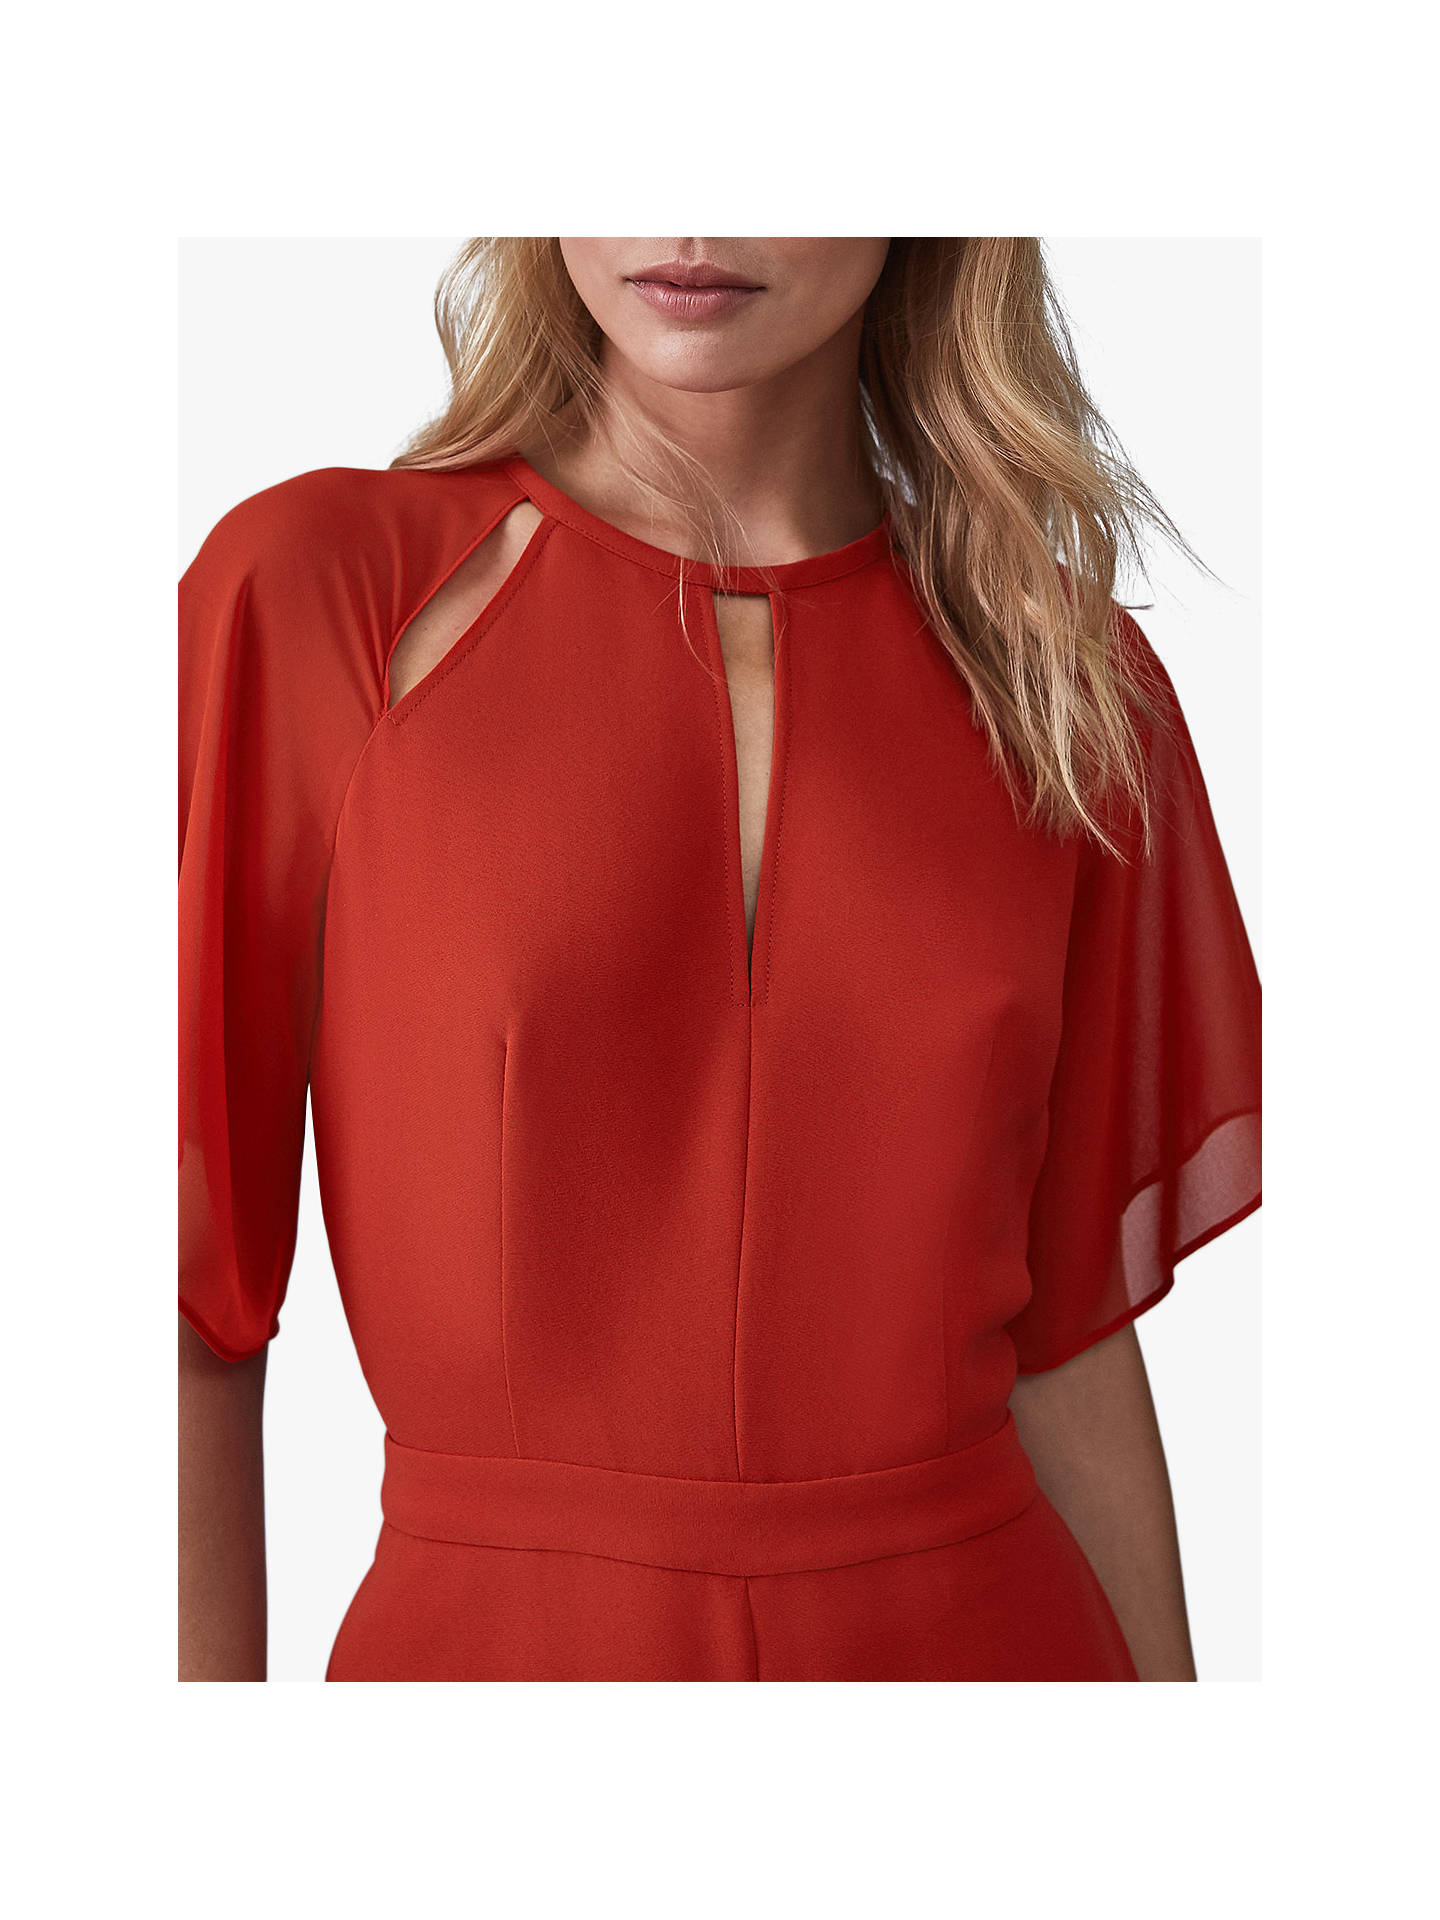 Buy Reiss Scarlet Chiffon Cut Out Jumpsuit, Red, 6 Online at johnlewis.com